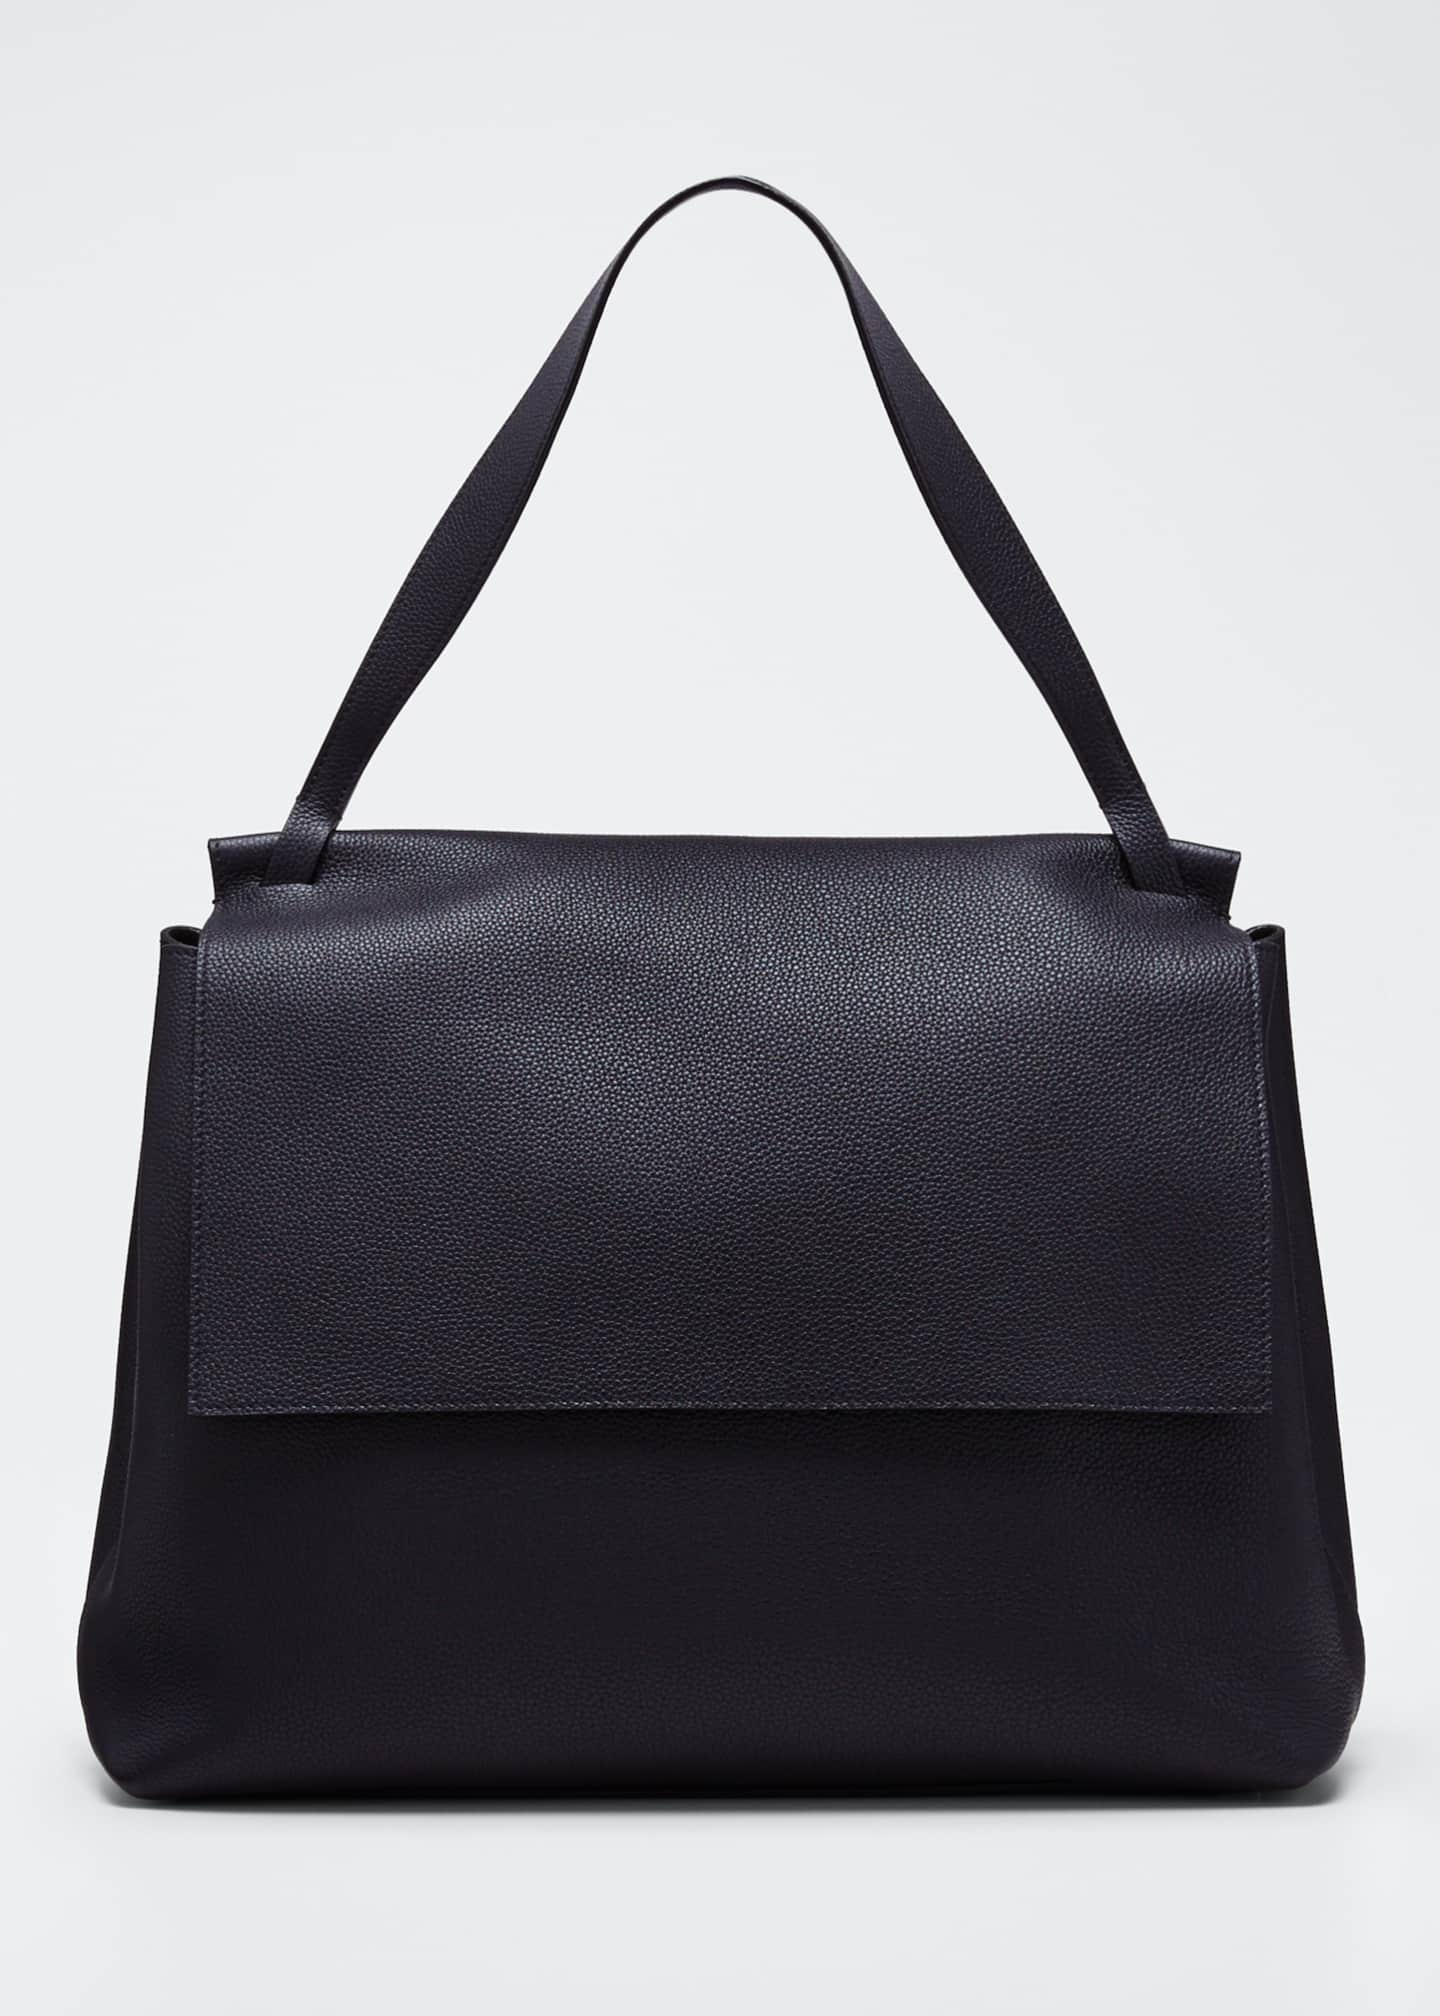 Image 1 of 5: 14 Two Fine Grained Top Handle Bag